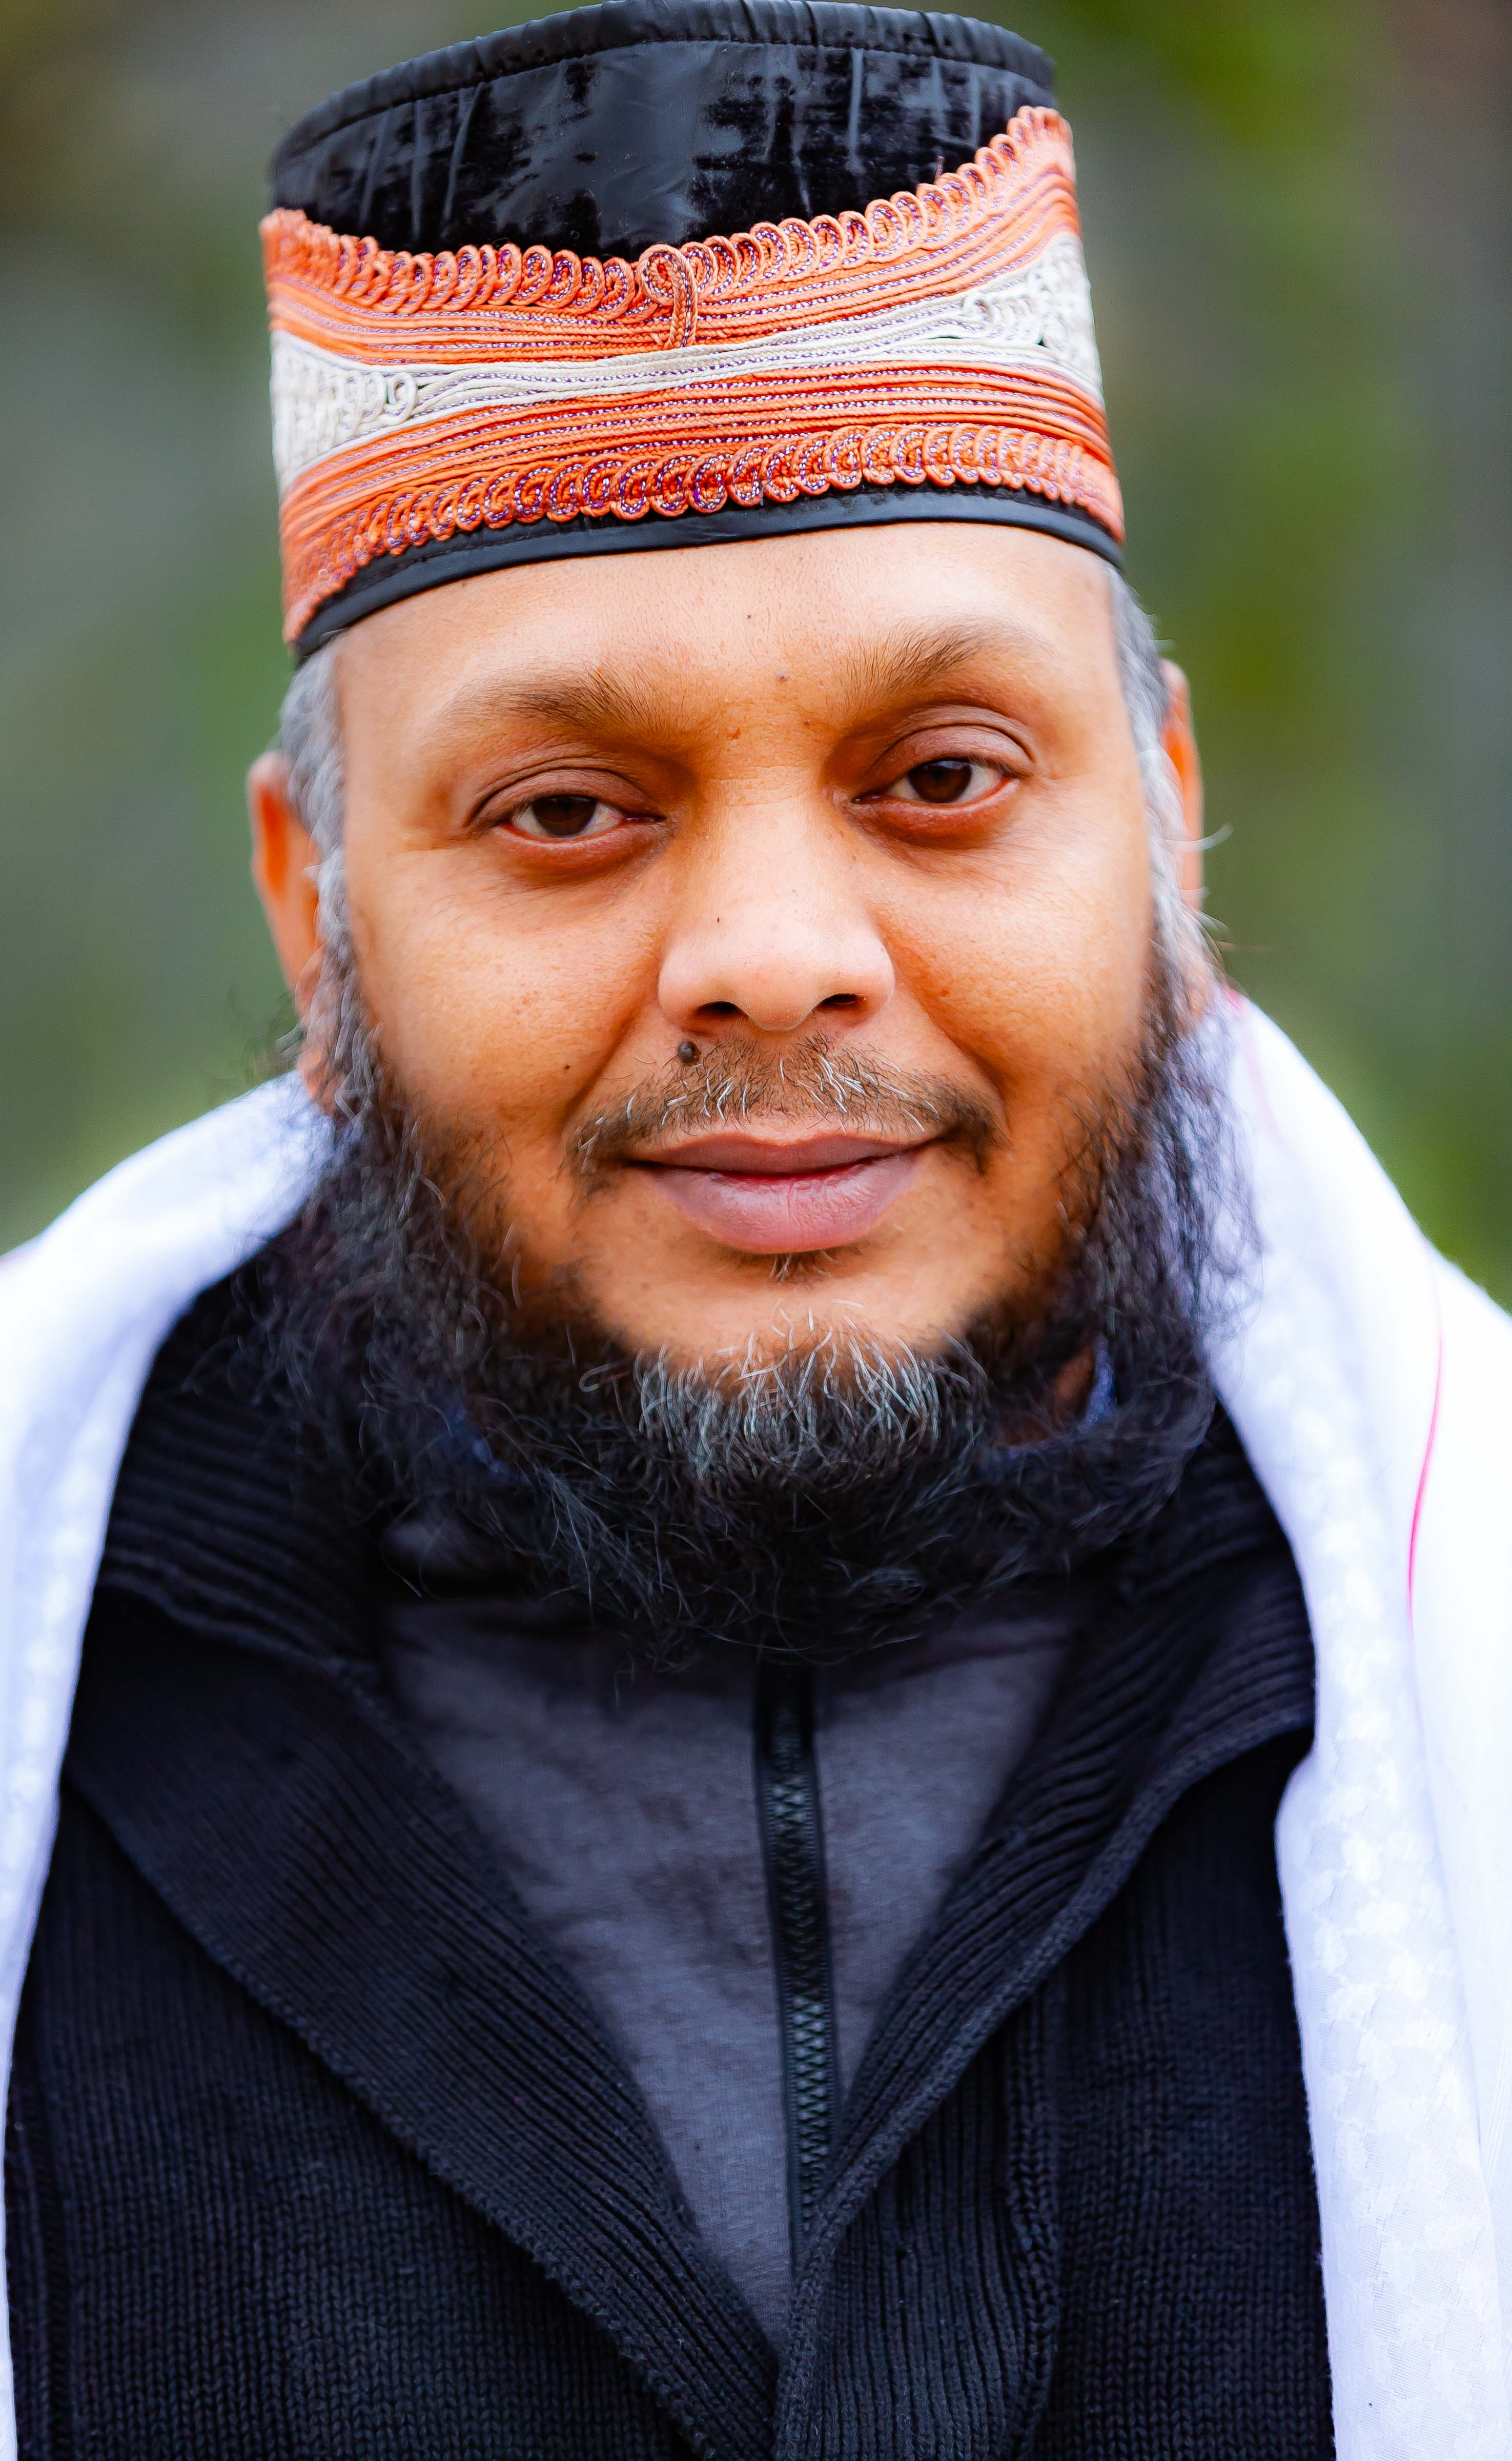 UK, Tower Hamlets (London) Prov, Imam Who Knows The Koran By Heart, 2009, IMG 3473